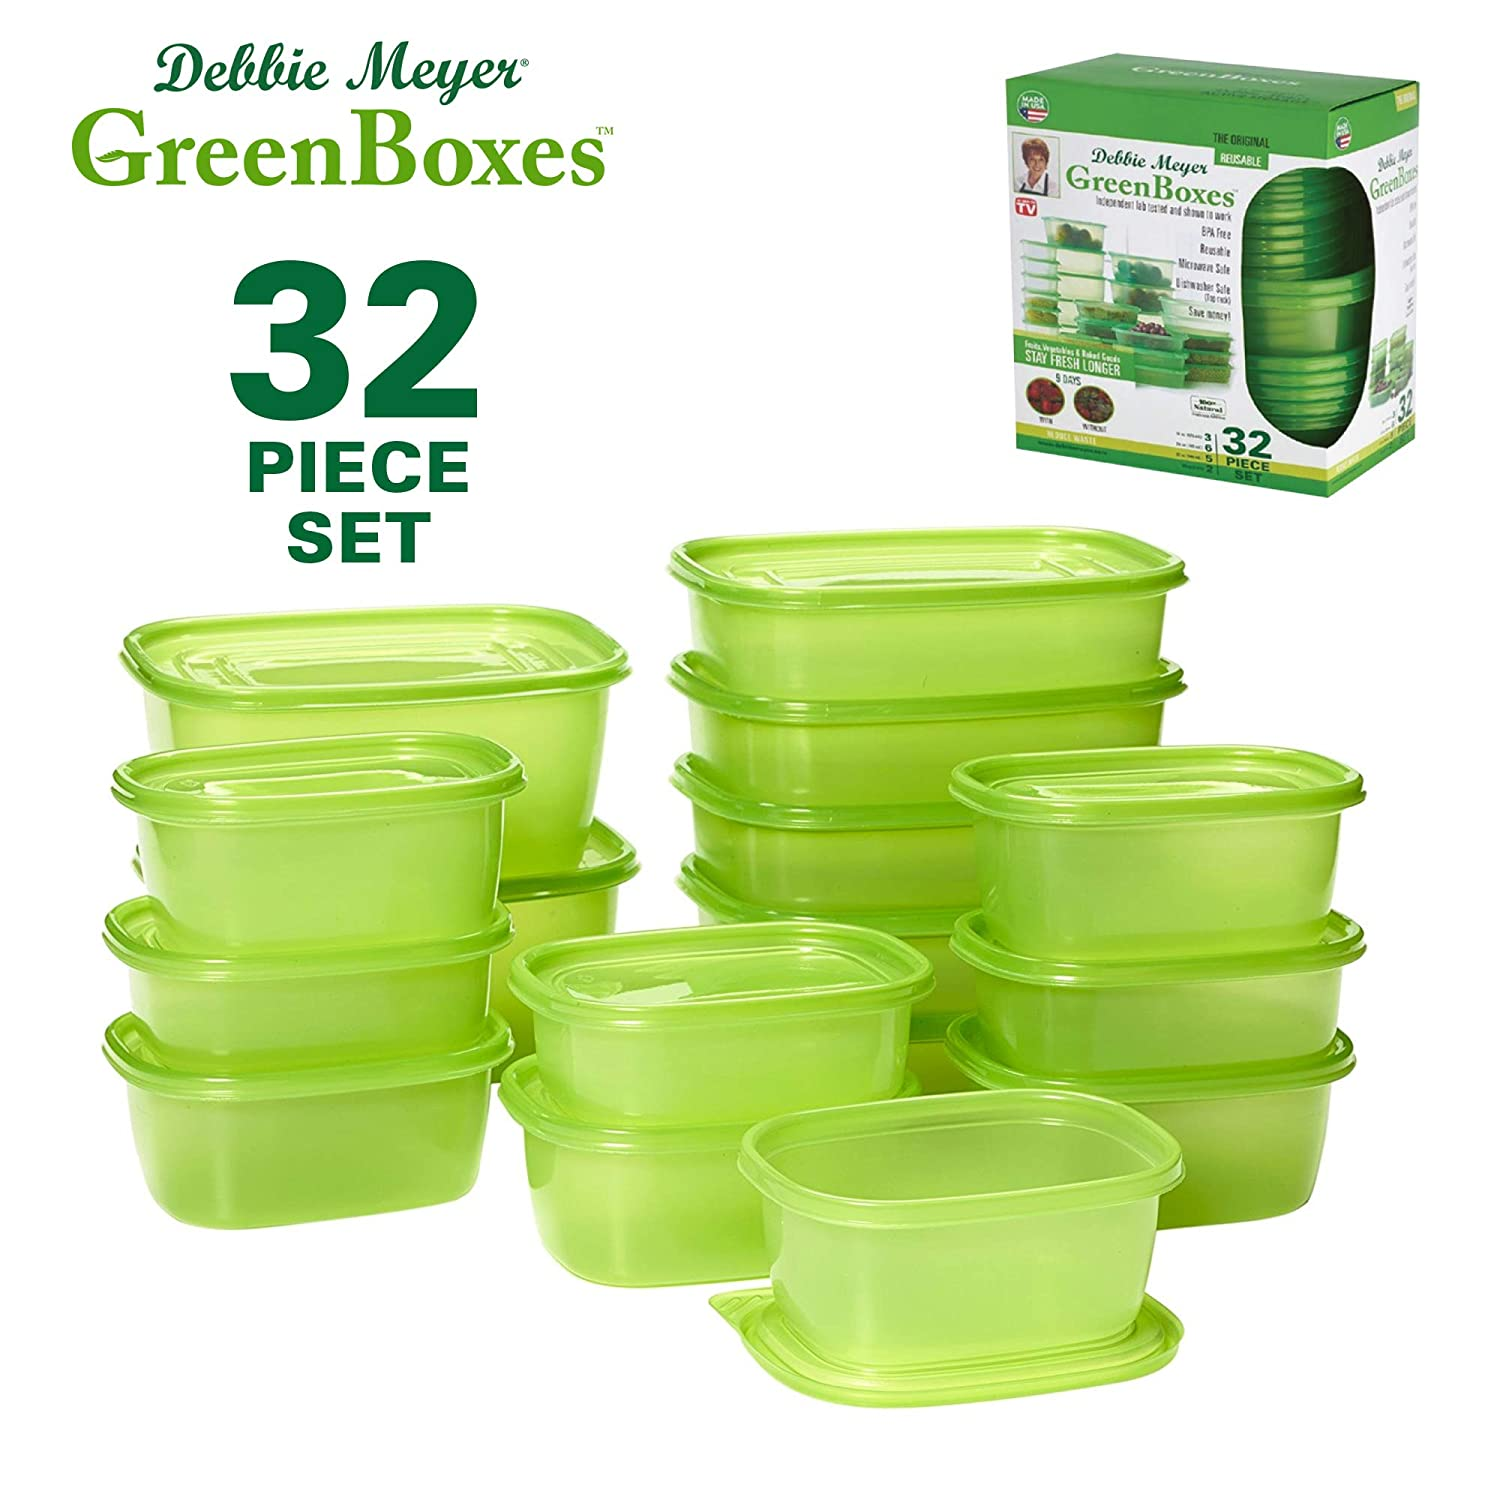 Debbie Meyer GreenBoxes, Foodsaver Storage Containers with Lids, Keep Fruits, Vegetables, Baked Goods & Snacks Fresher Longer! BPA Free, Microwave & Dishwasher Safe- 32 Piece Set